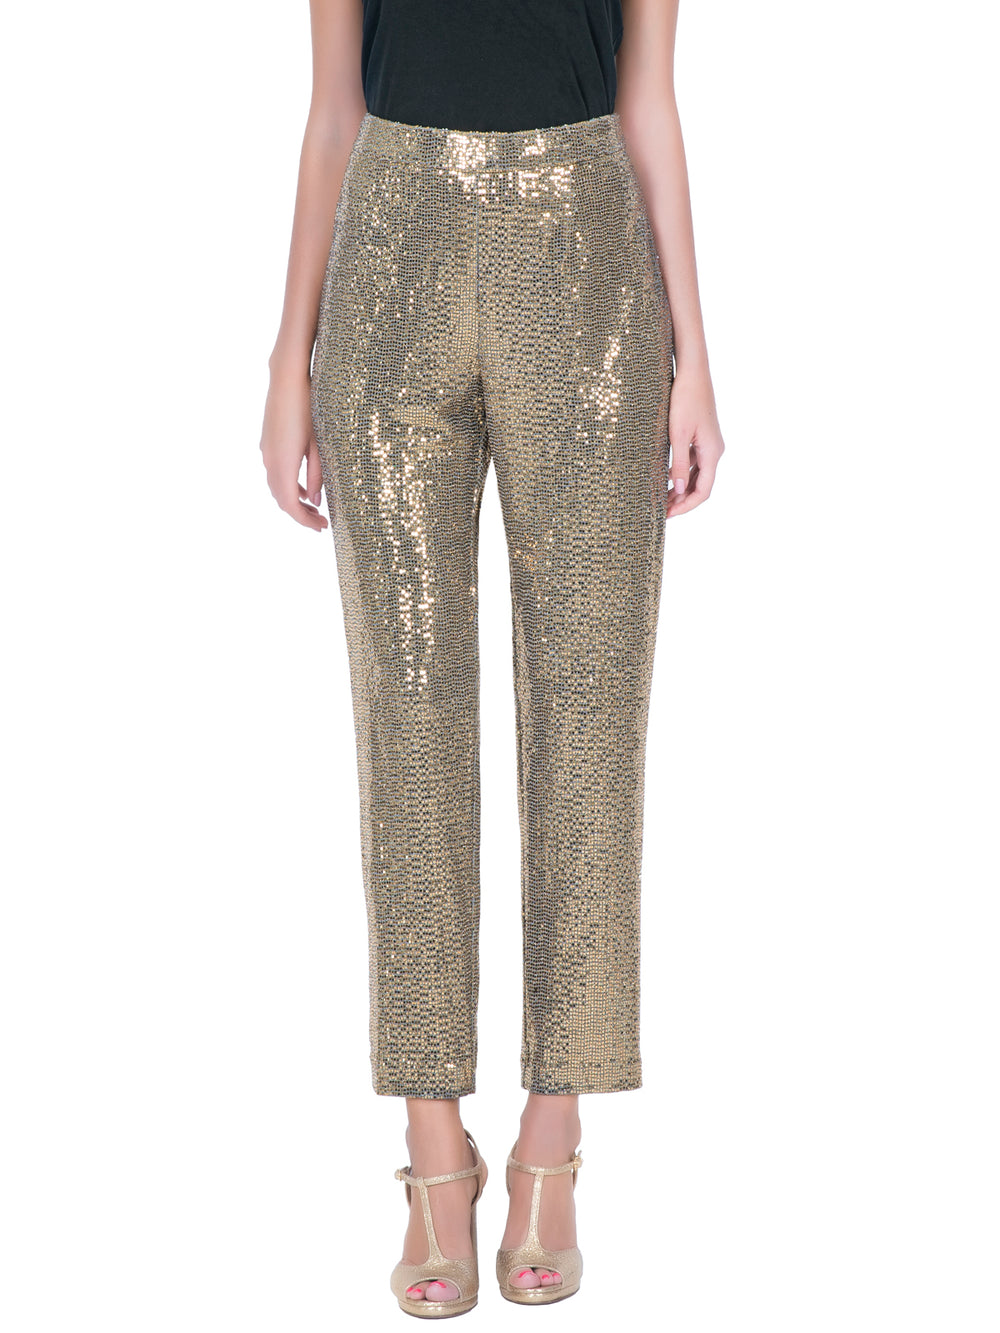 Sequin Slim Fit Ankle Length Pant